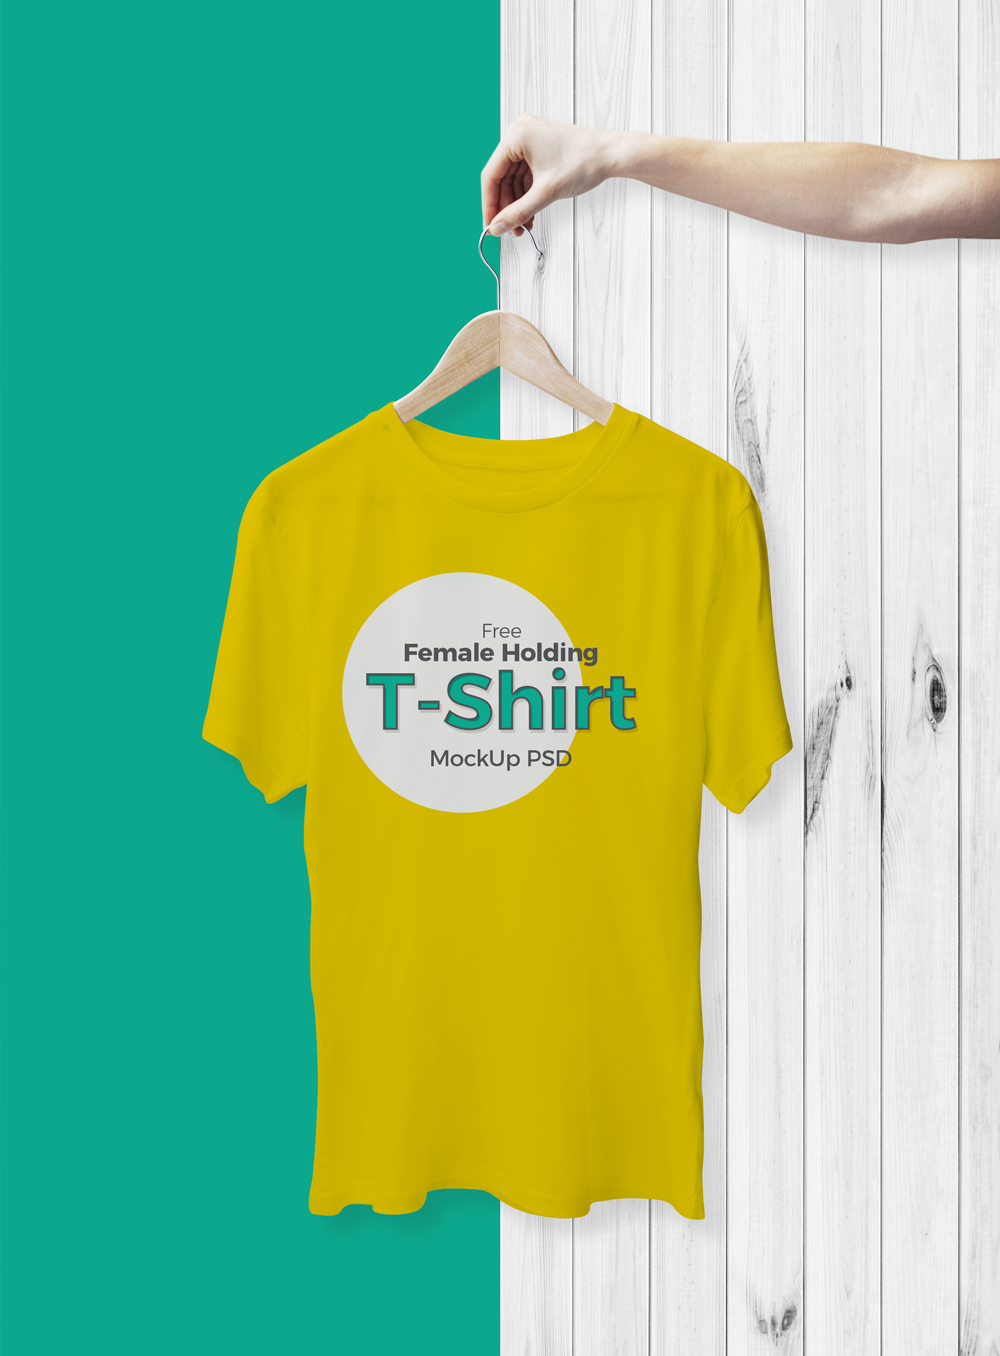 Free-Cool-Female-Holding-T-Shirt-Mockup-For-Branding